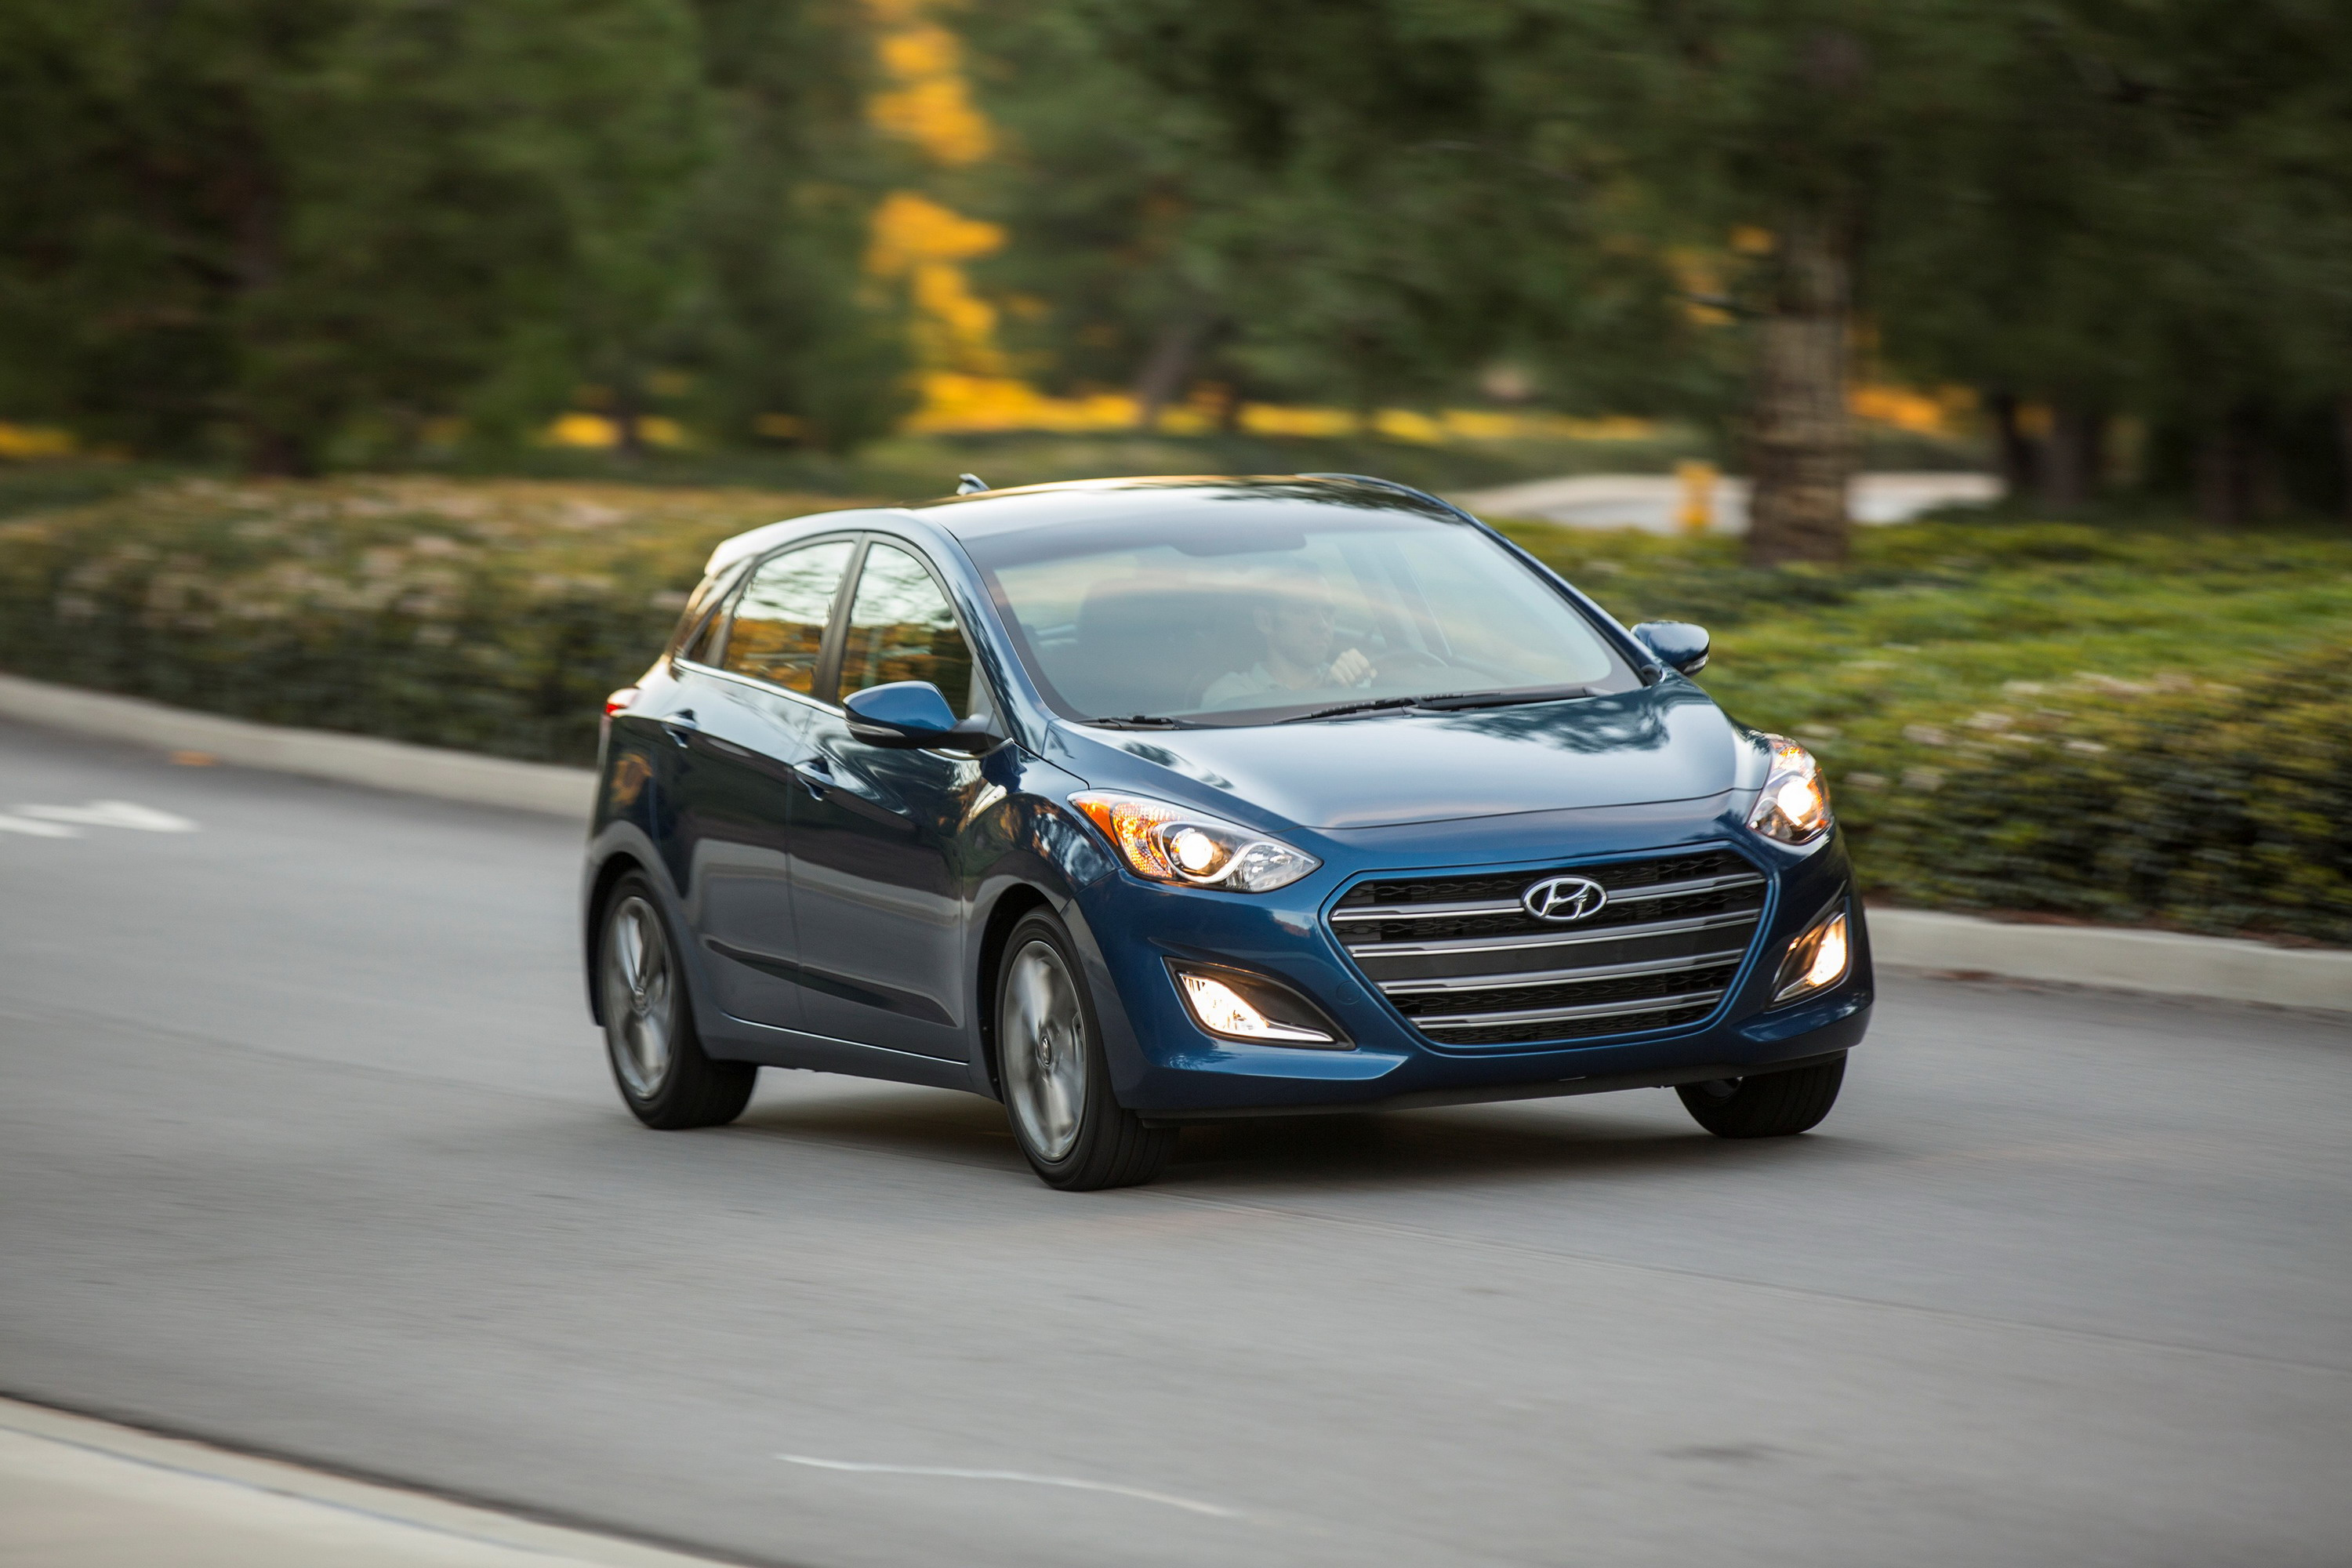 gt sports autonews refreshed new hyundai tech elantra look and